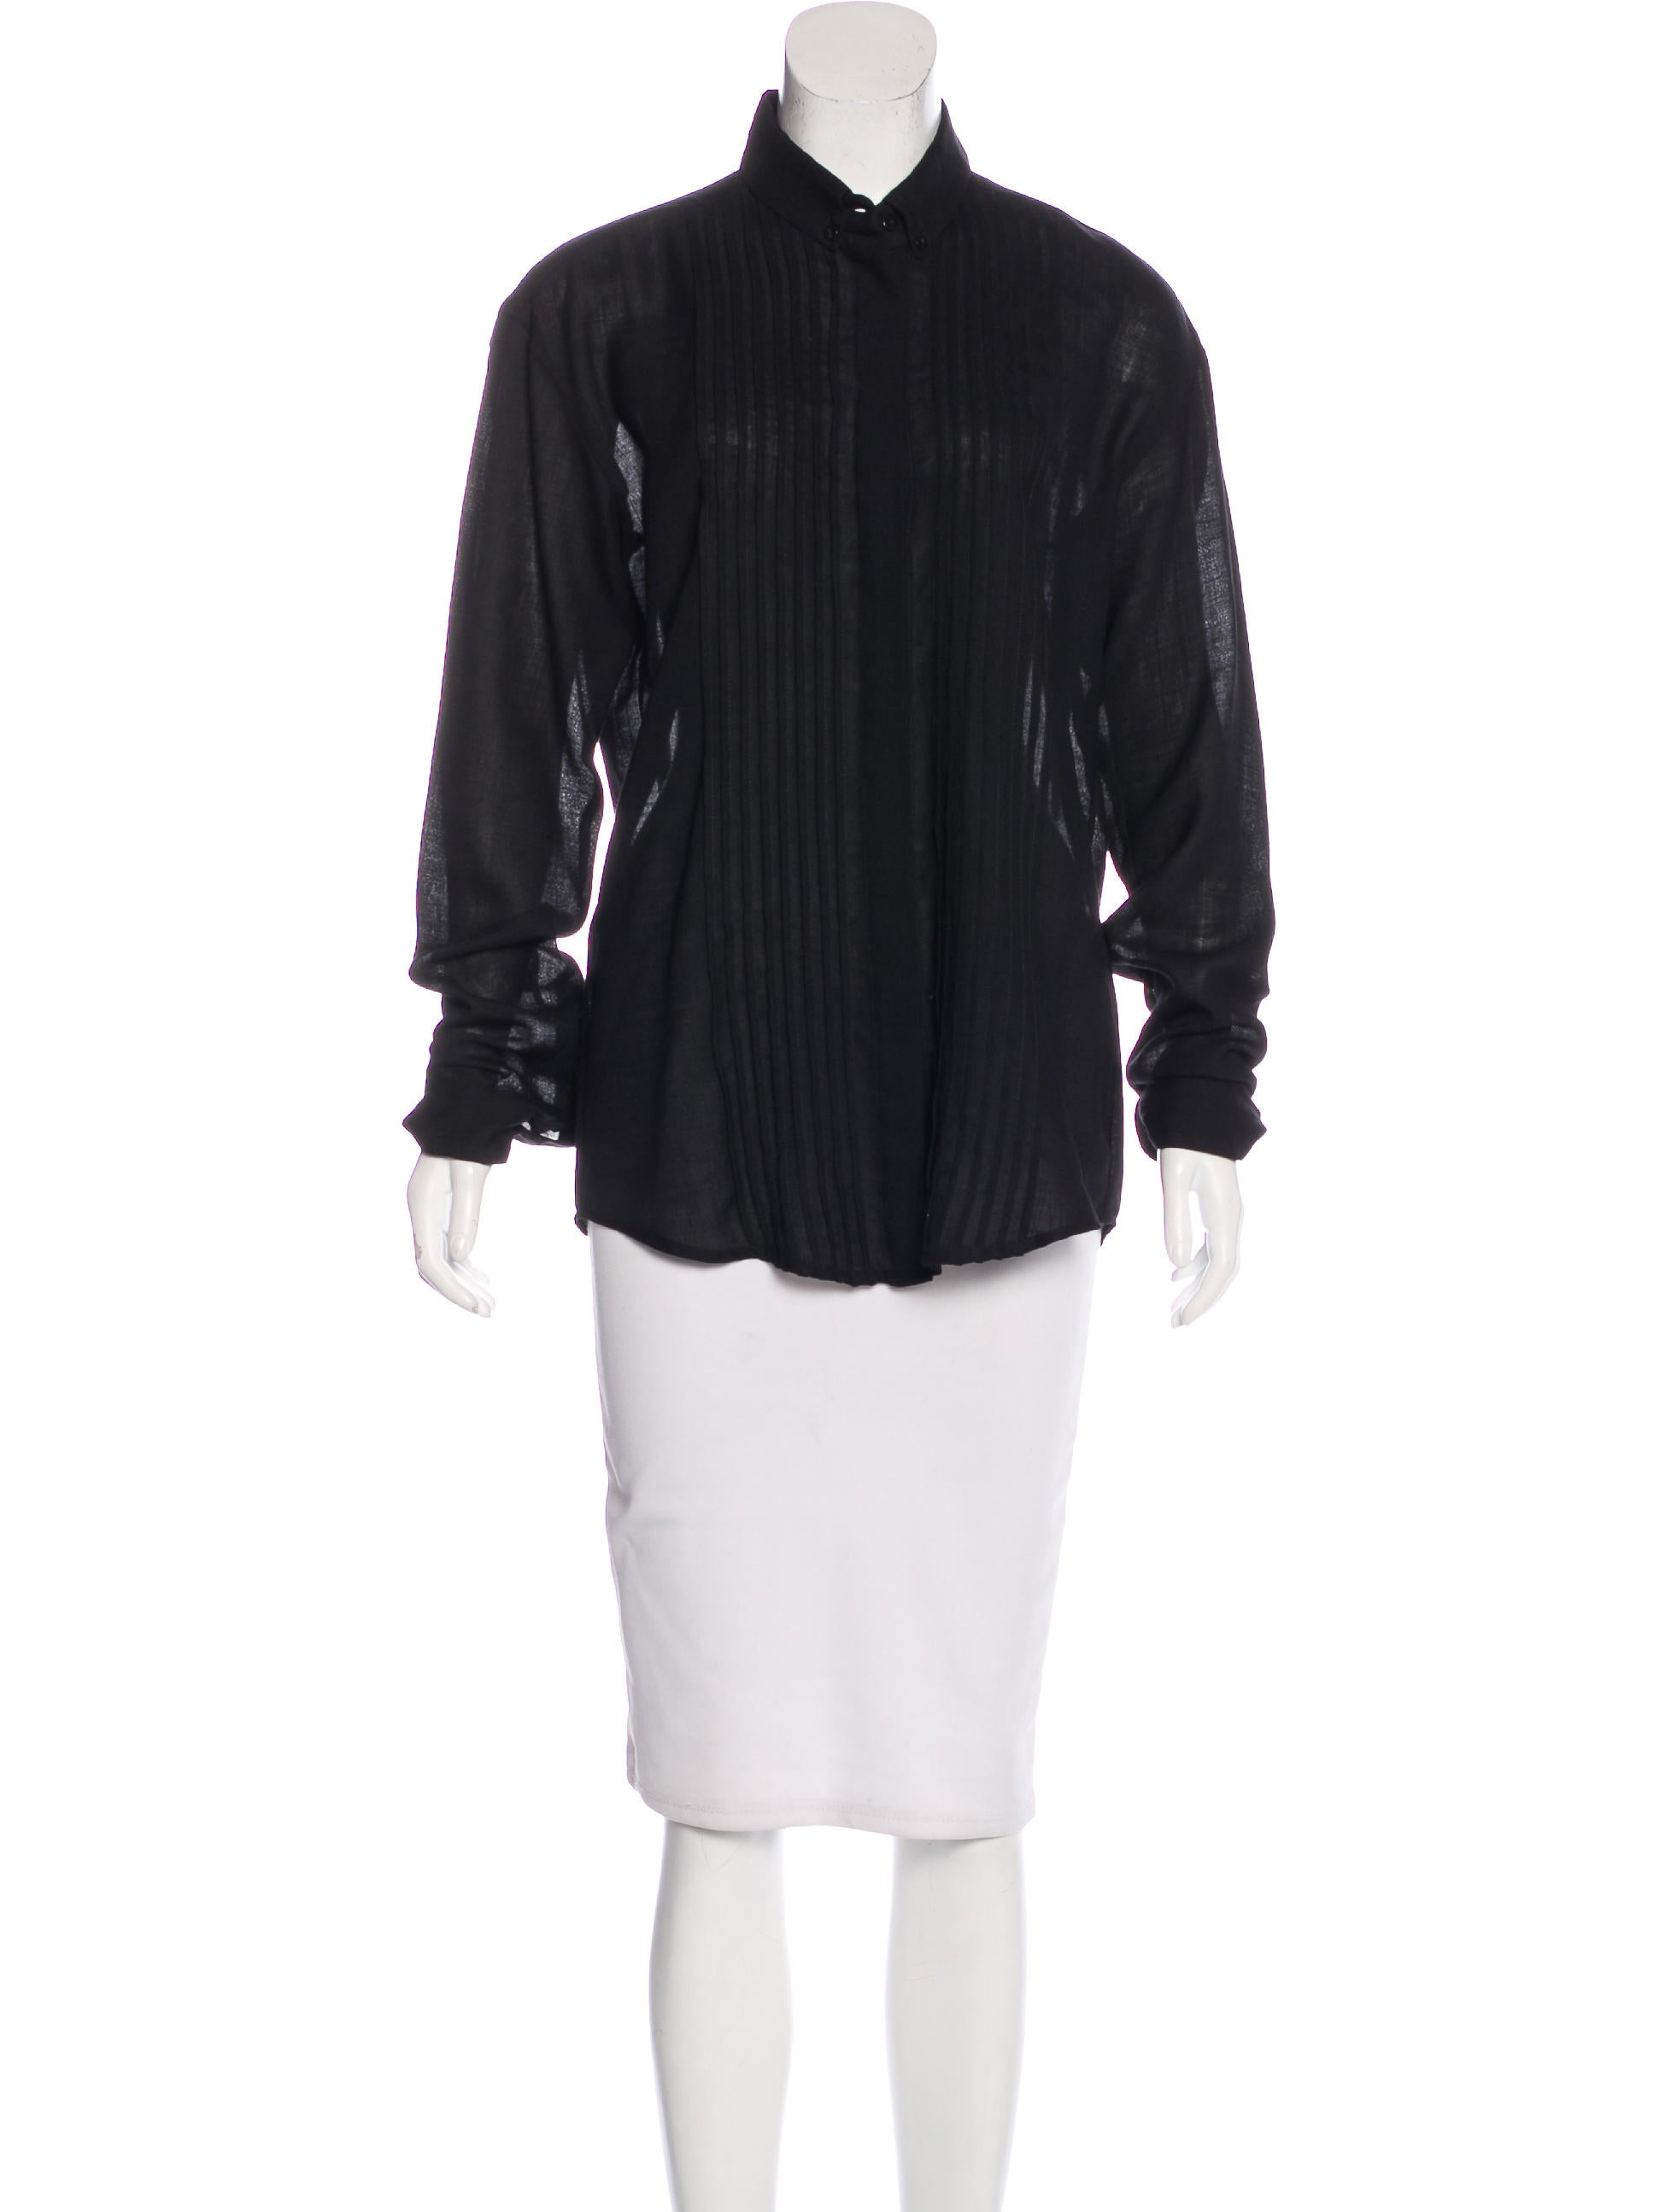 Anthony vaccarello wool button up top w tags clothing for Best wool shirt jackets